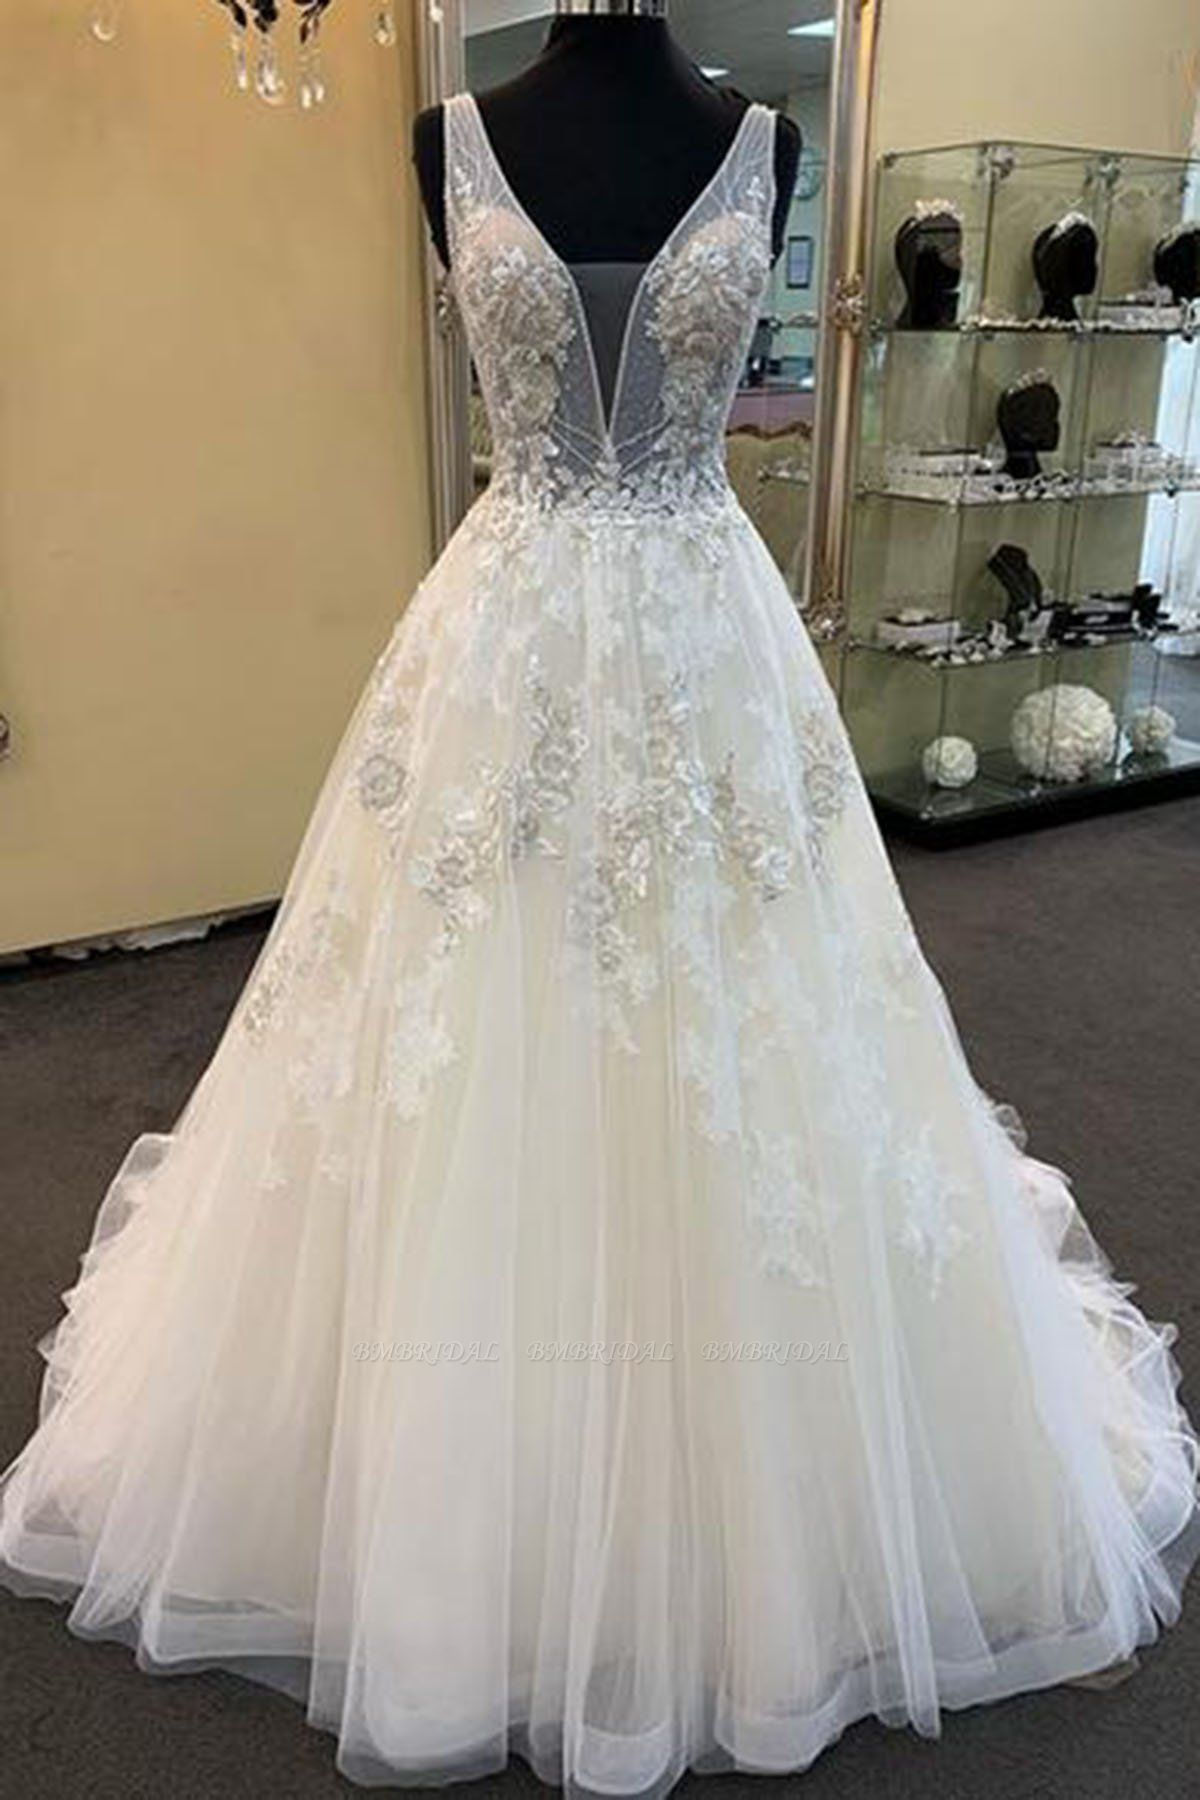 Glamorous Unique White Tulle V-Neck Wedding Dress Long Beaded Lace Bridal Gowns On Sale